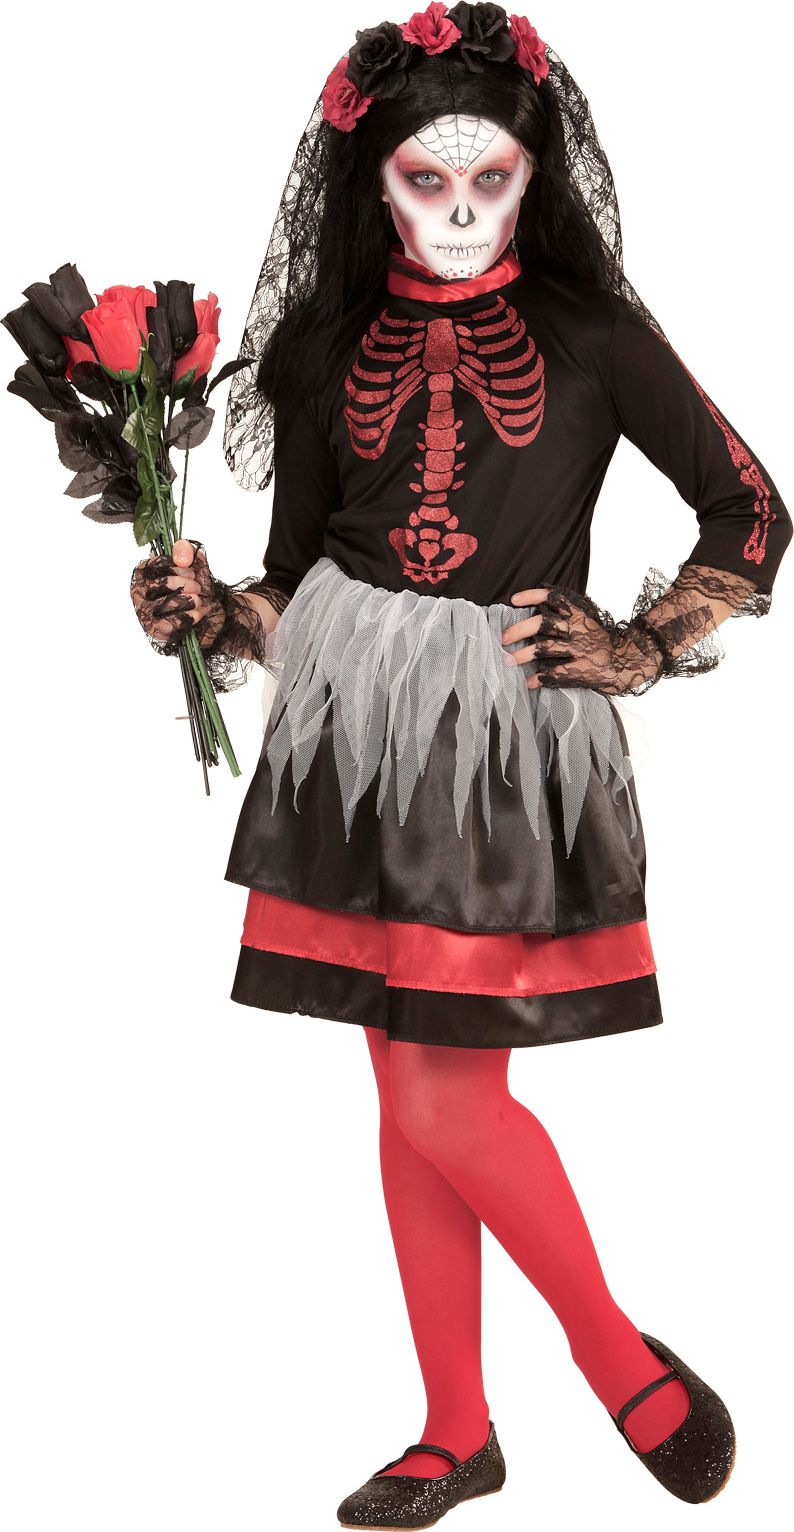 Day of the dead outfit kind